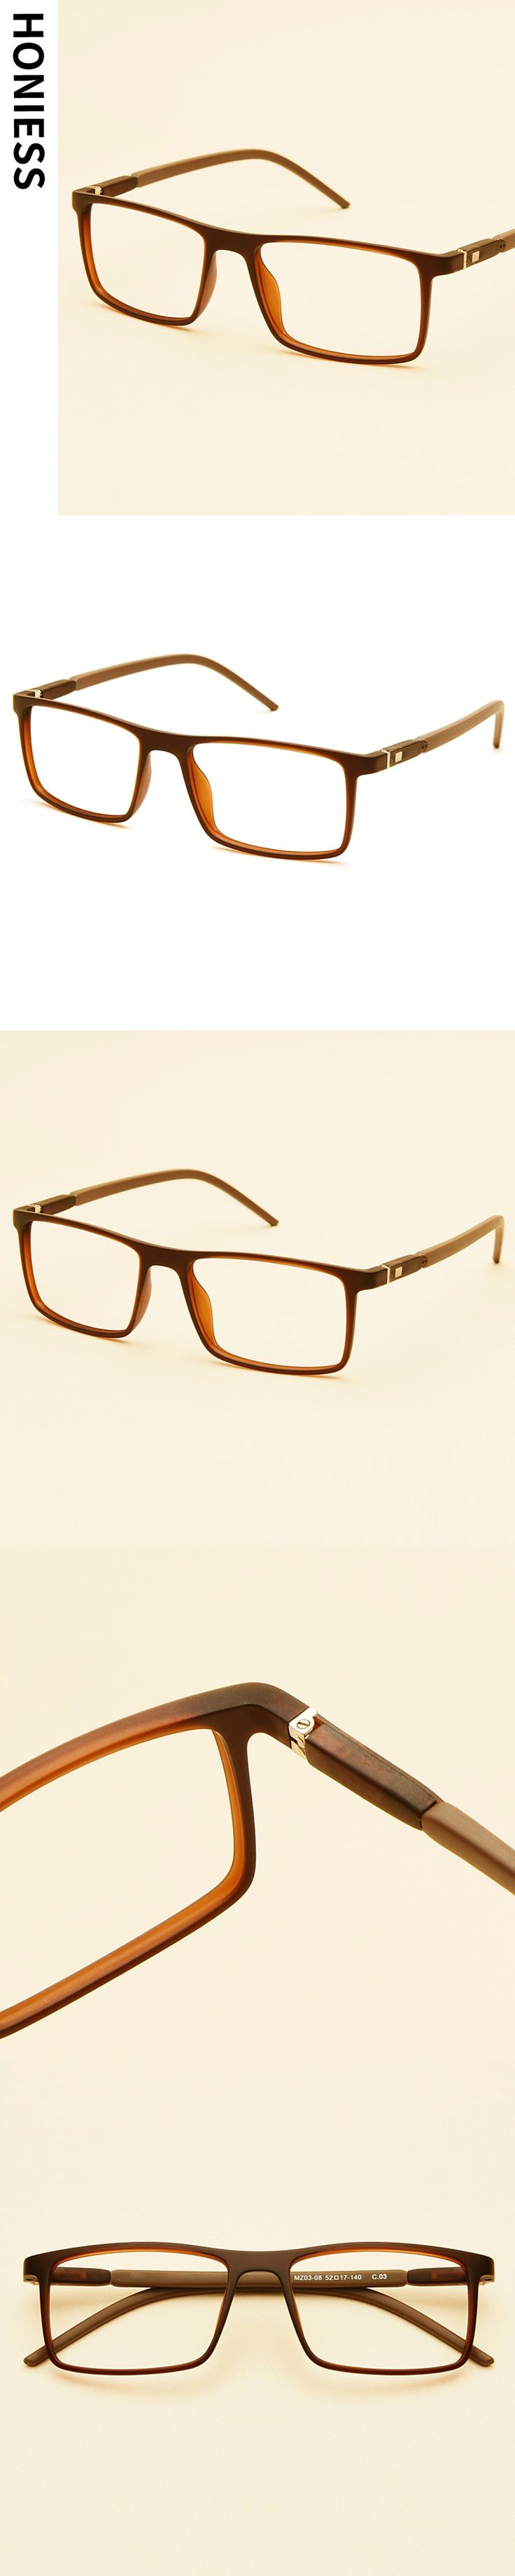 Computer Glasses Anti Glare Anti Reflection Stylish Comfortable Spring Hinge Frames for Men and Women